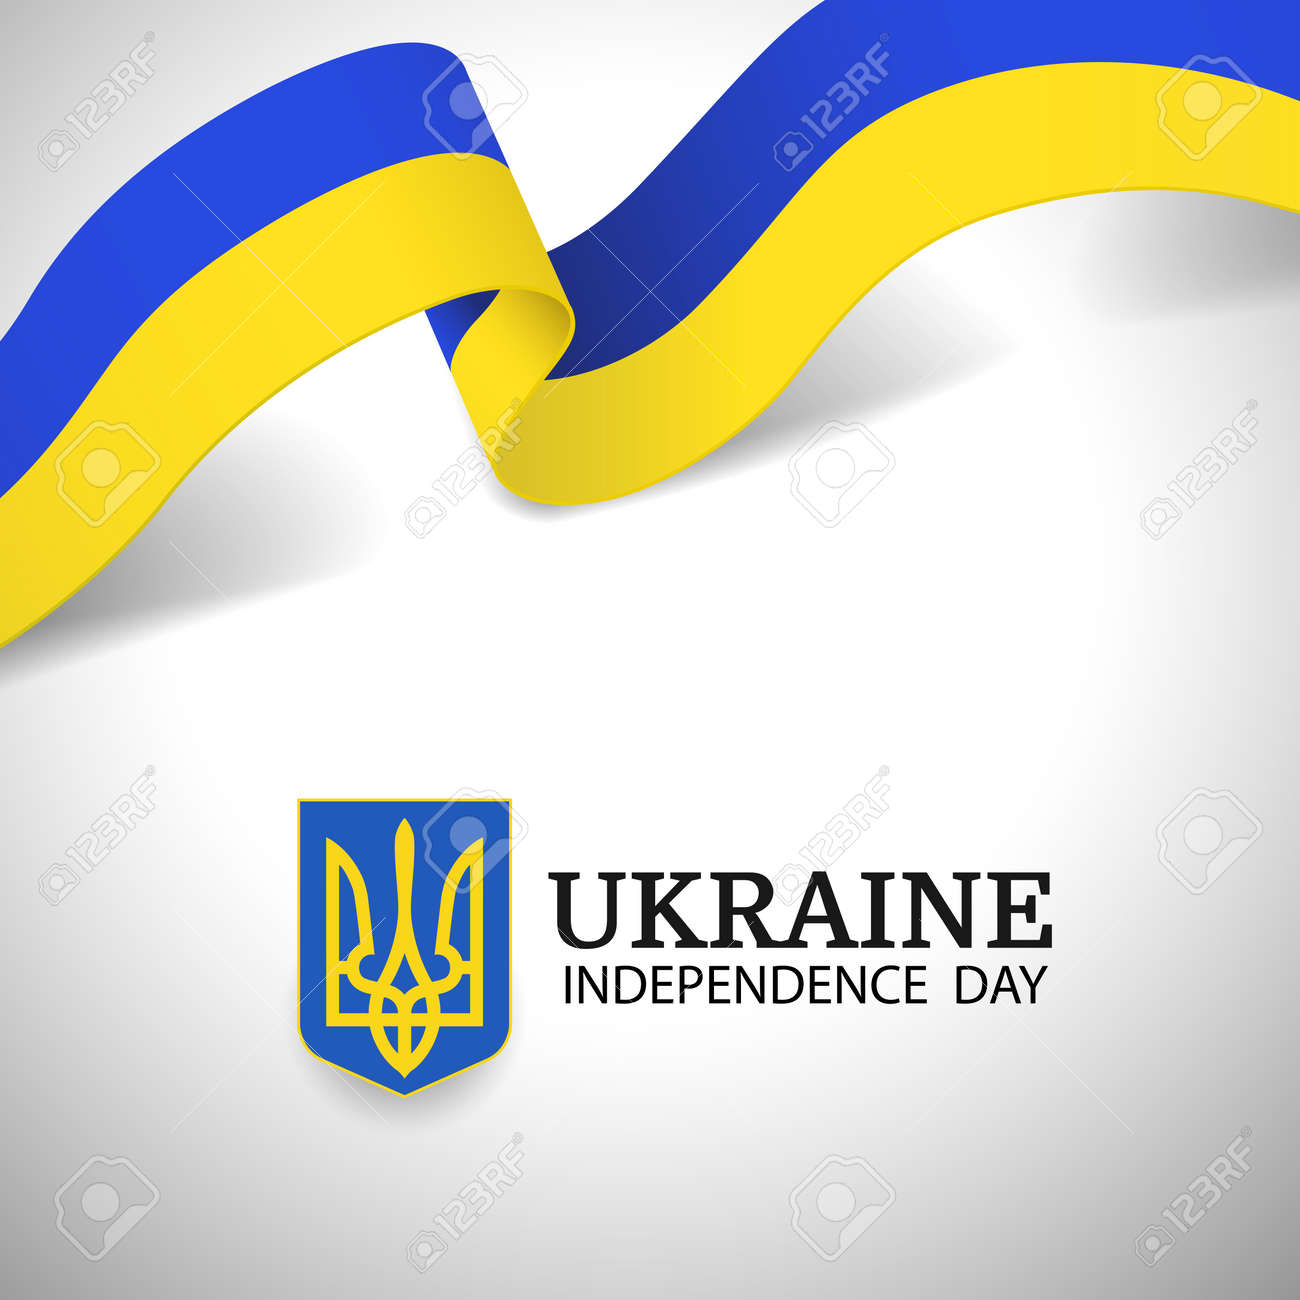 Vector Illustration of Ukraine Independence Day. - 170744764